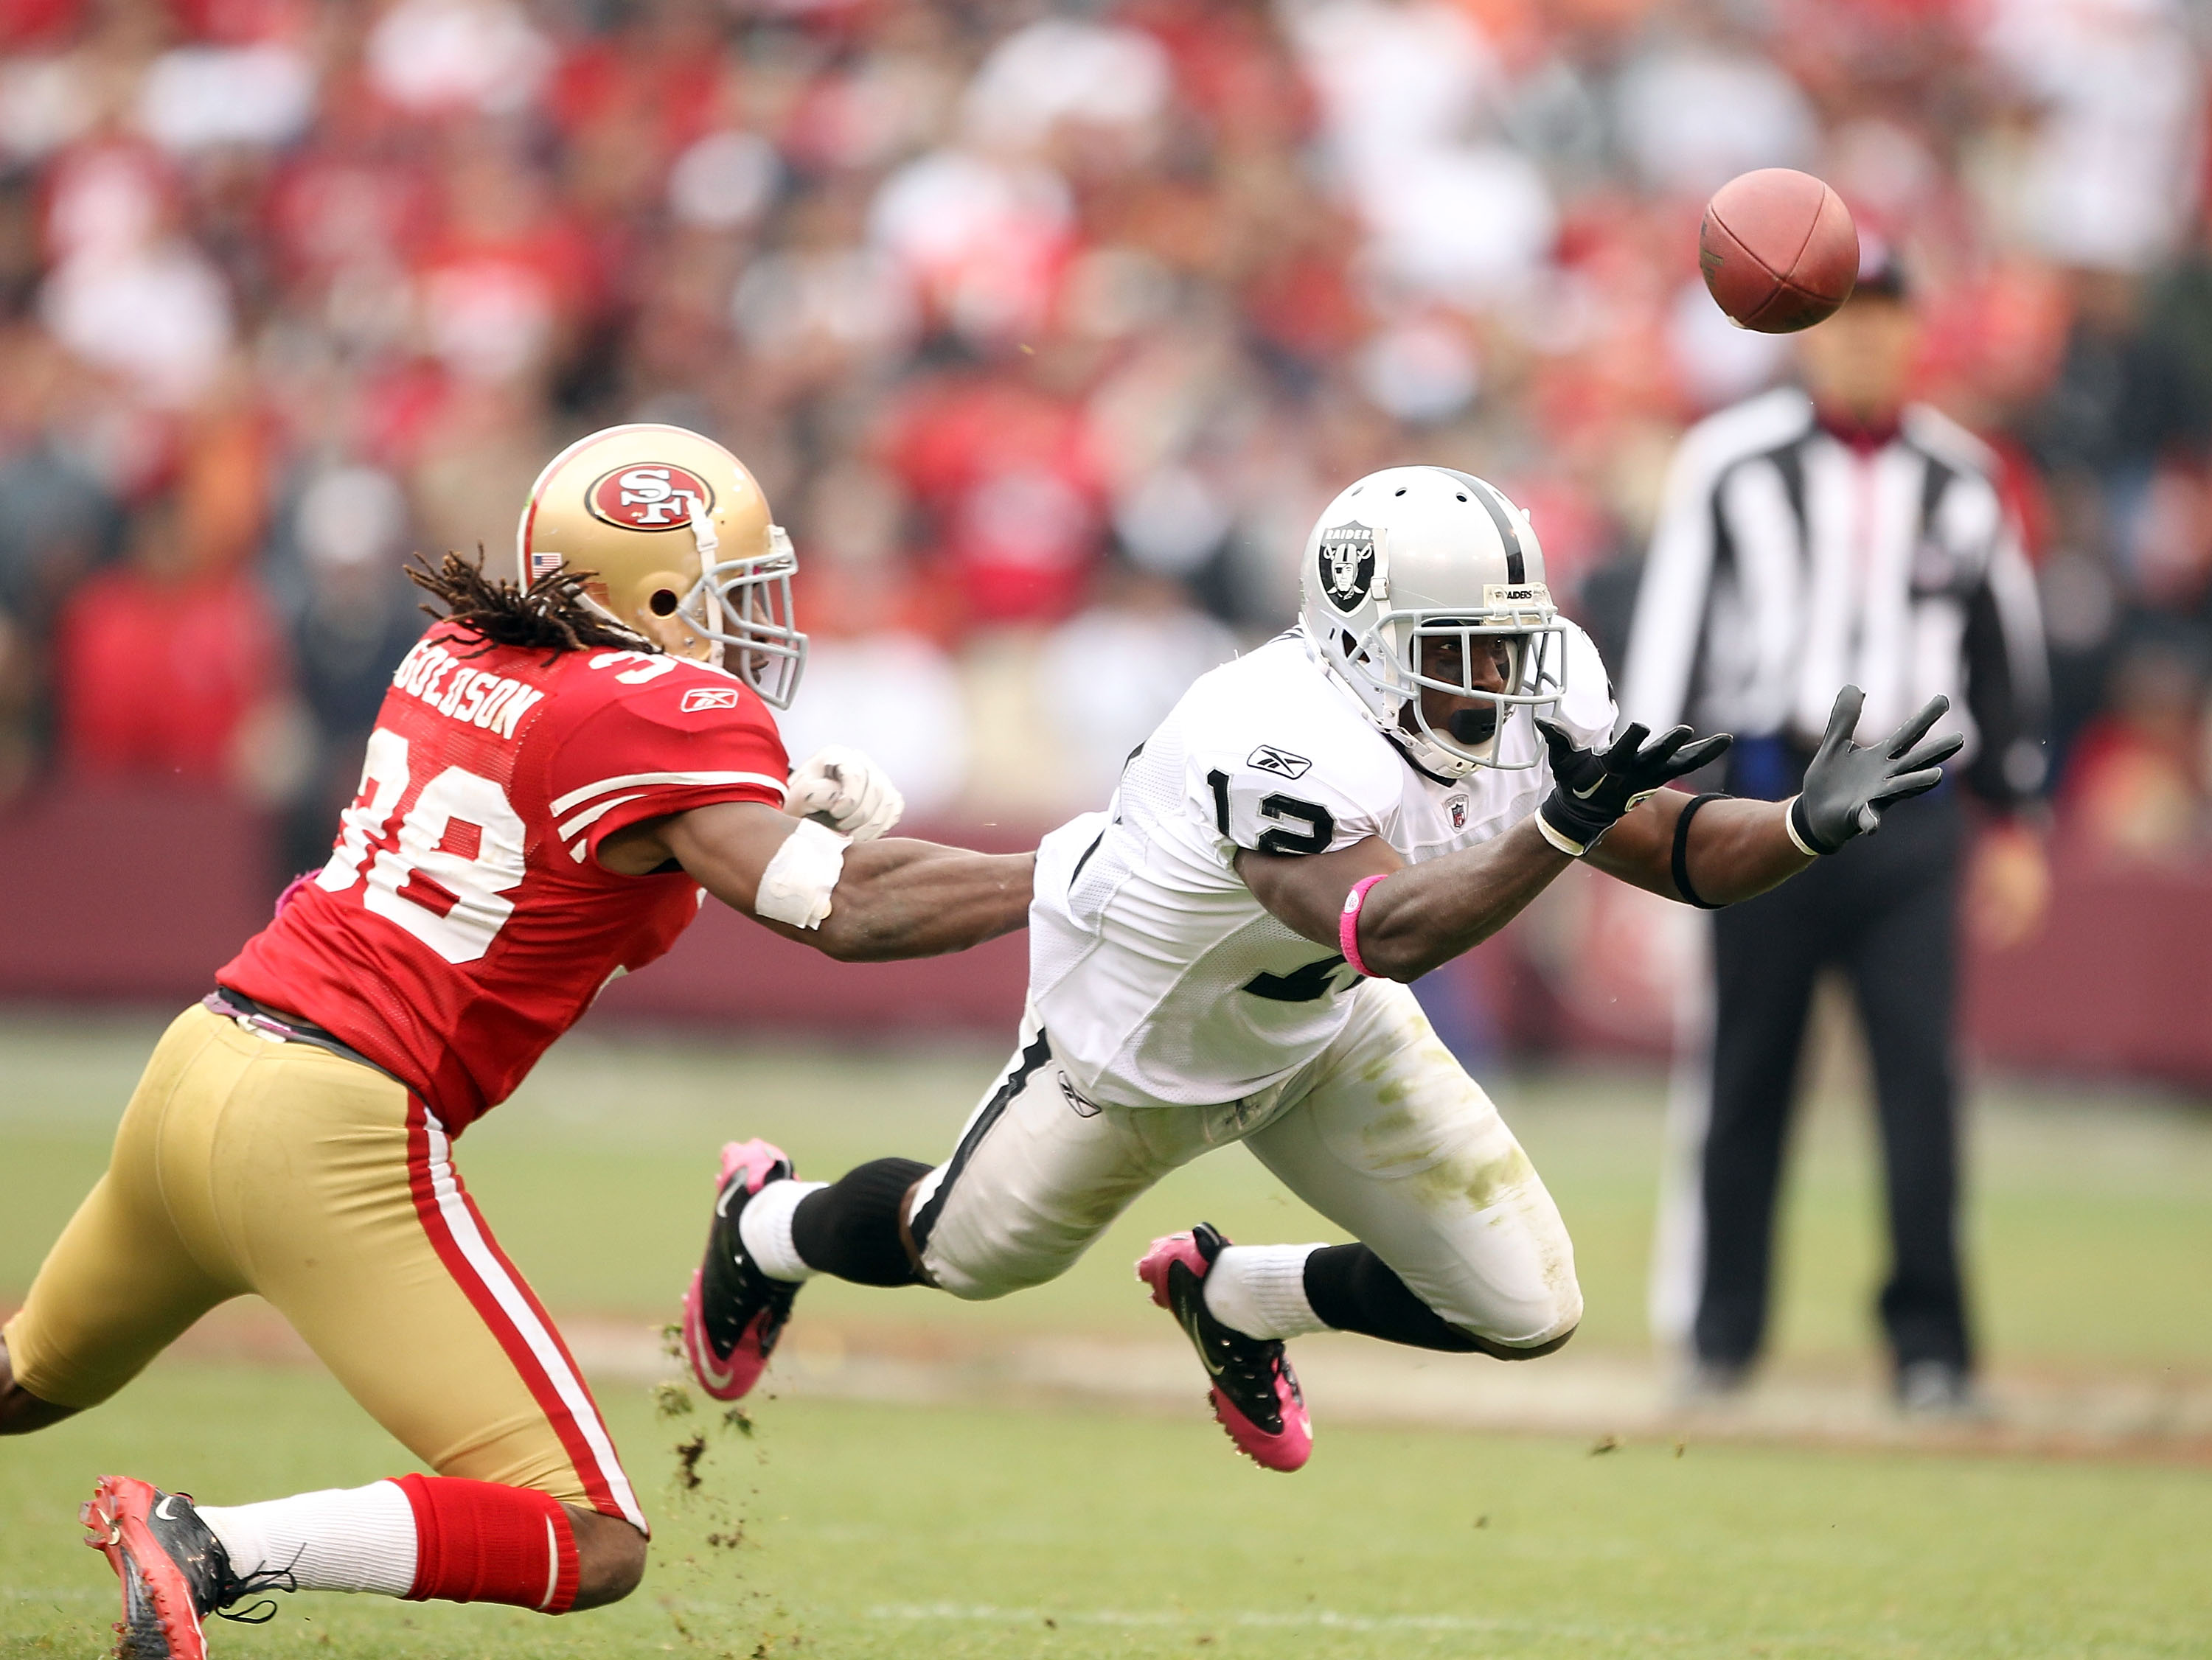 SAN FRANCISCO - OCTOBER 17:  Jacoby Ford #12 of the Oakland Raiders bobbles a ball while defended by Dashon Godson #38 of the San Francisco 49ers at Candlestick Park on October 17, 2010 in San Francisco, California. The ball was intercepted by Takeo Spike